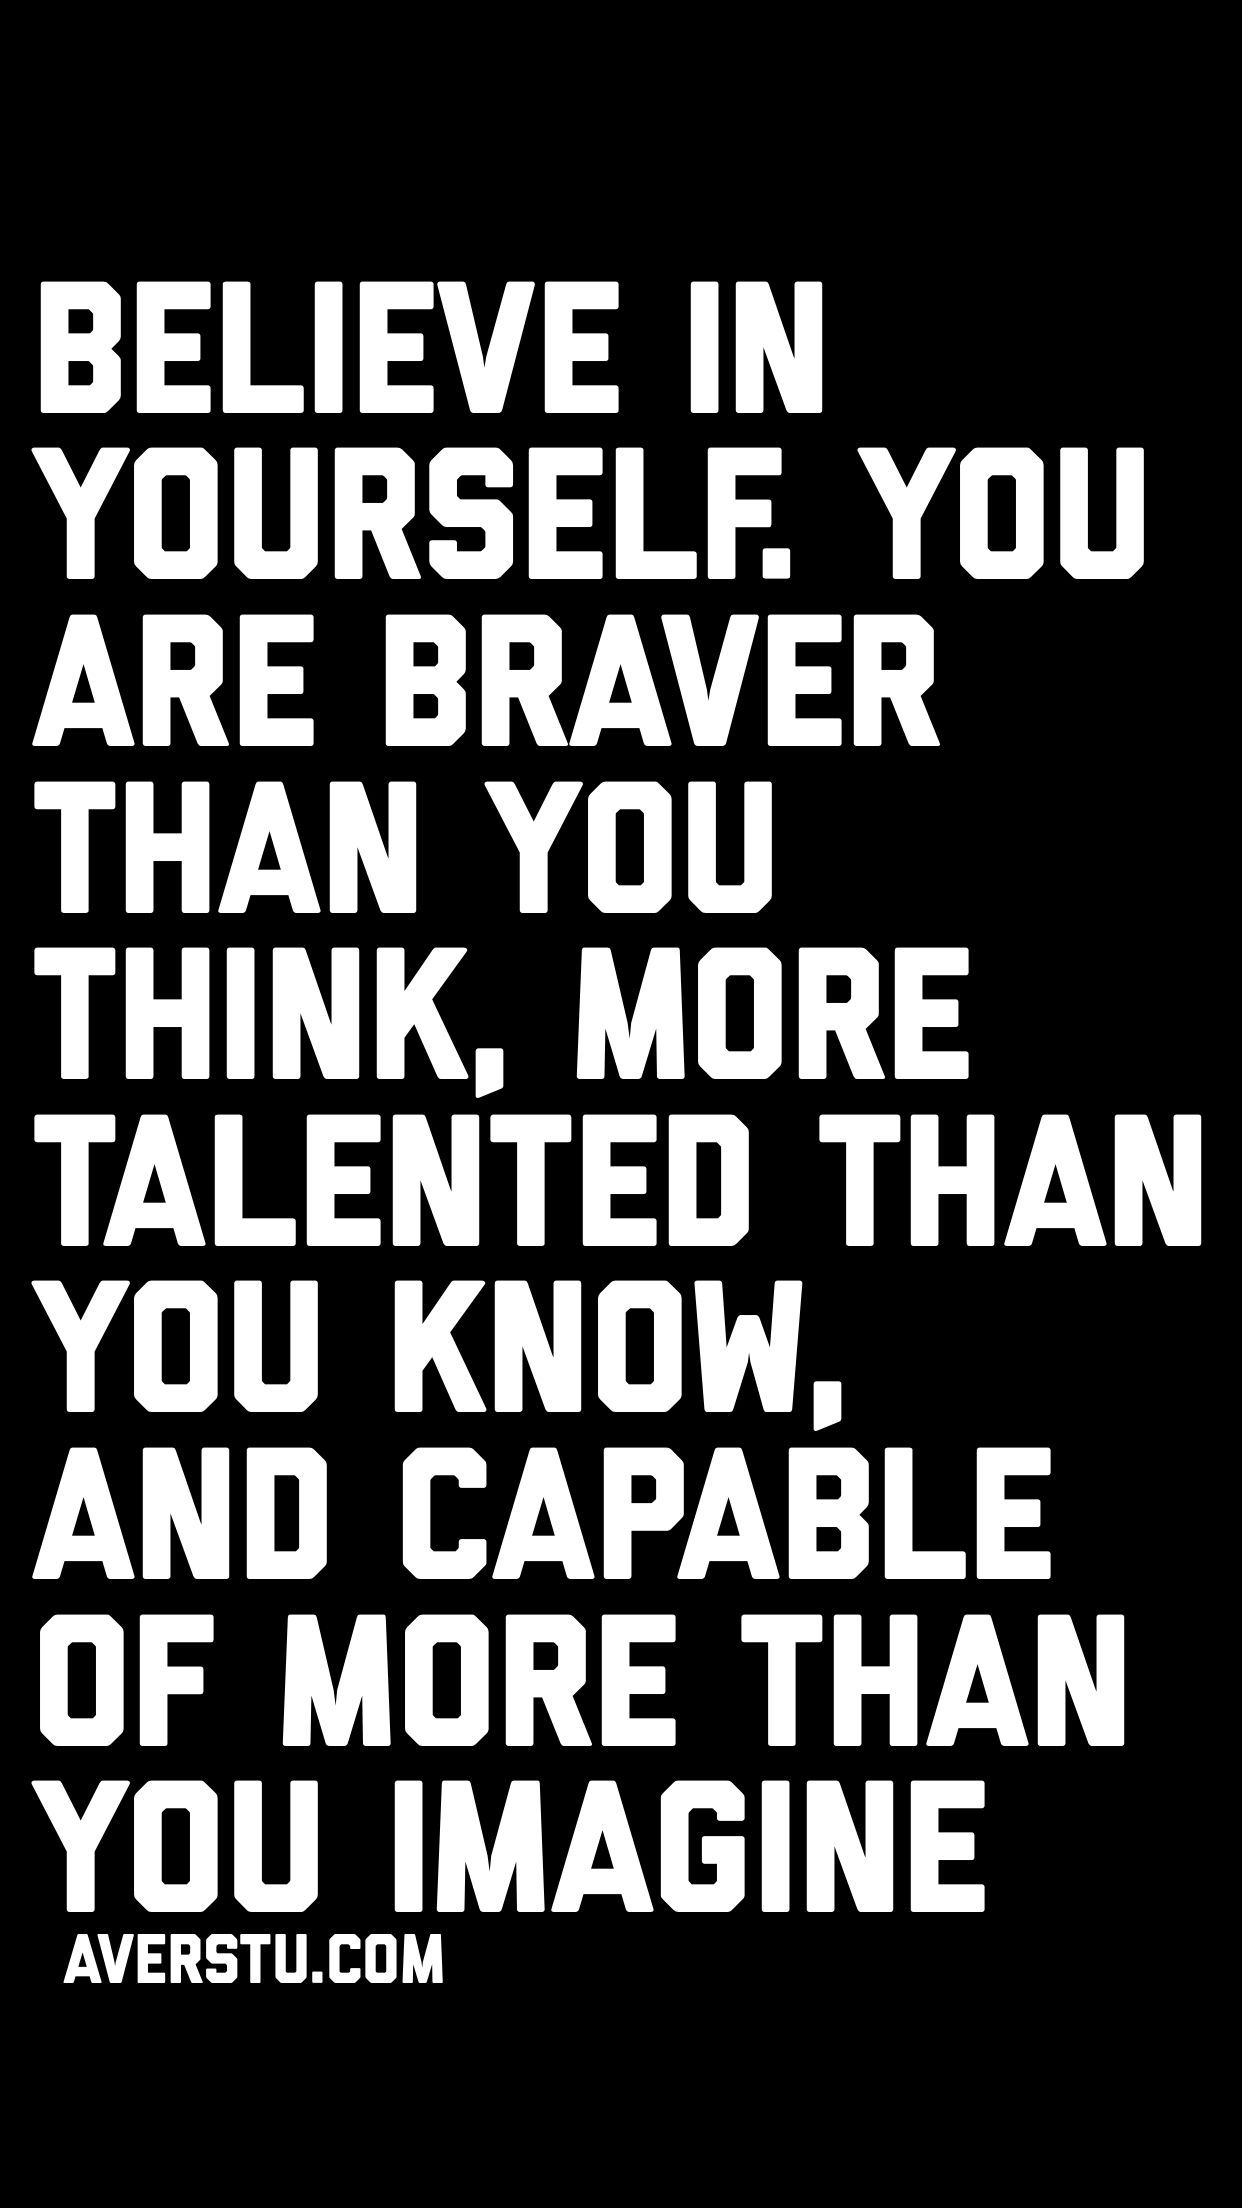 Believe In Yourself You Are Braver Than You Think More Talented Than You Know And Capable Of Mo Believe In Yourself Quotes Believe Quotes Be Yourself Quotes